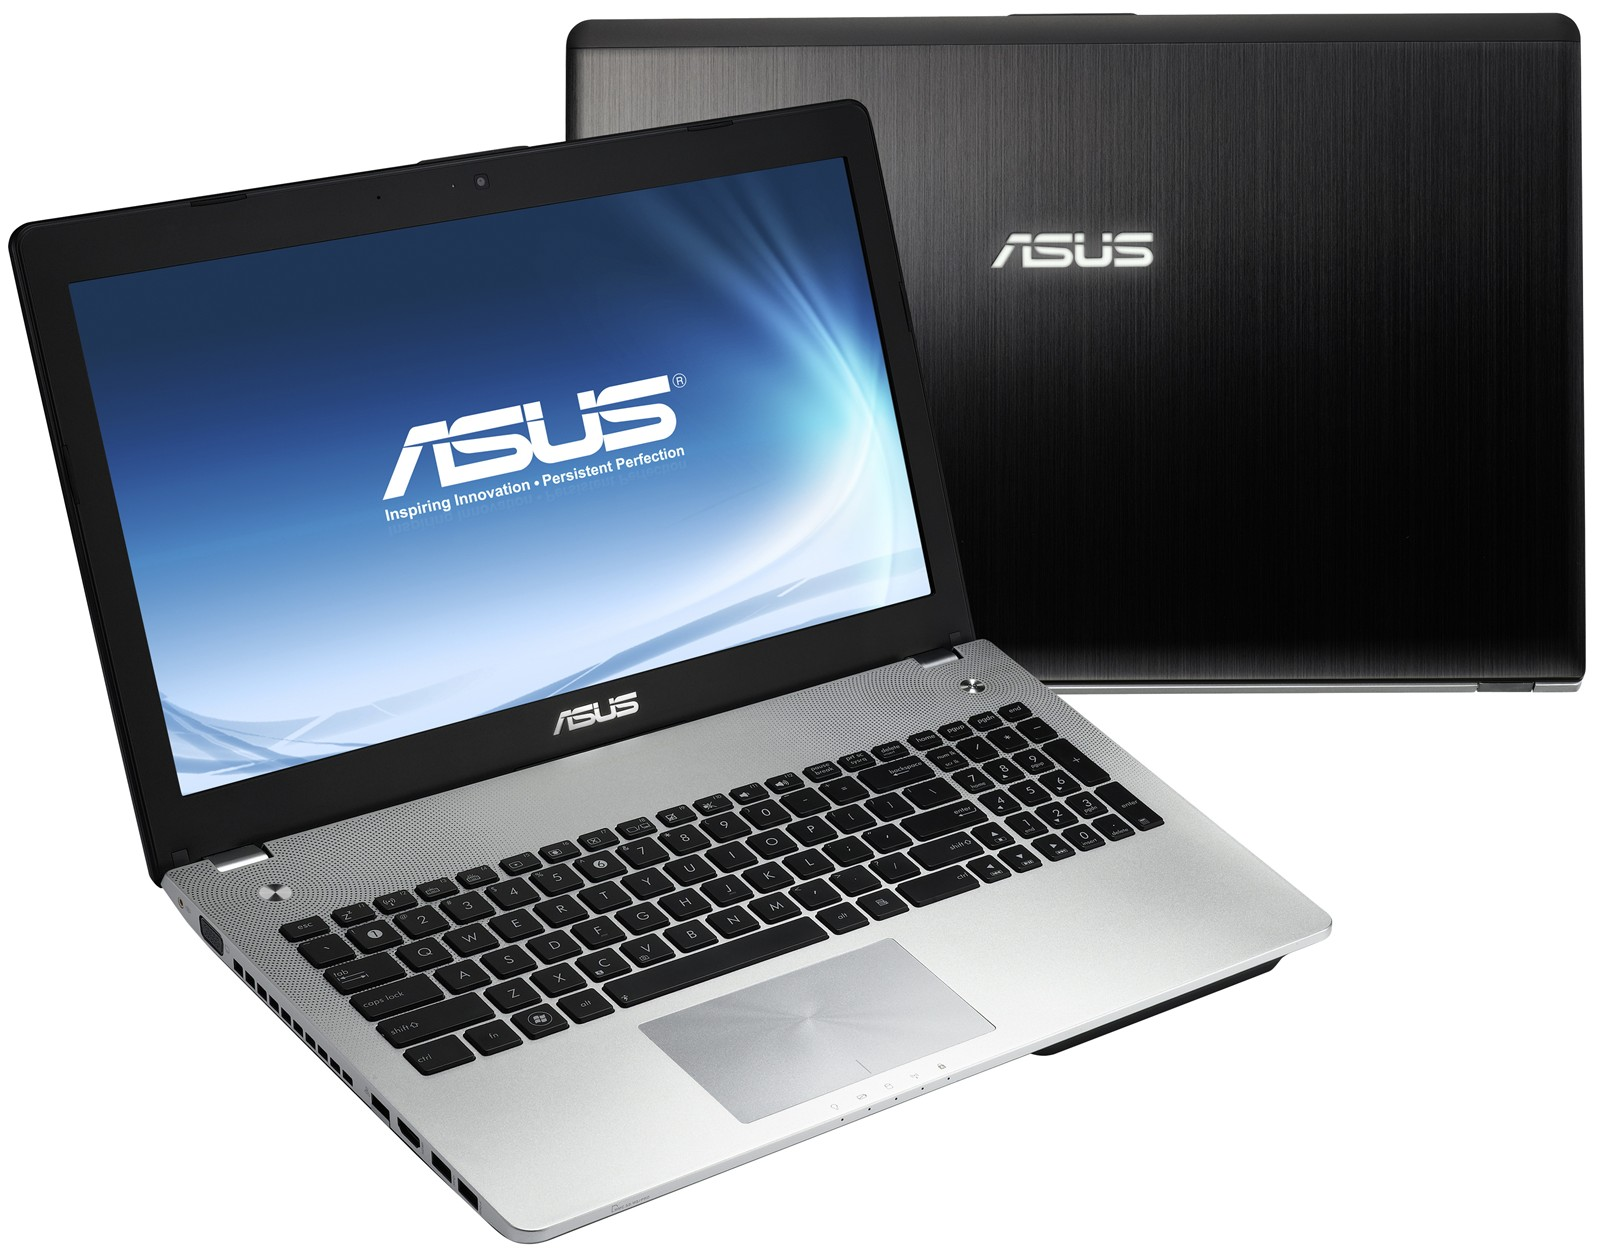 Asus+N56VZ-DS71+laptop1.jpg